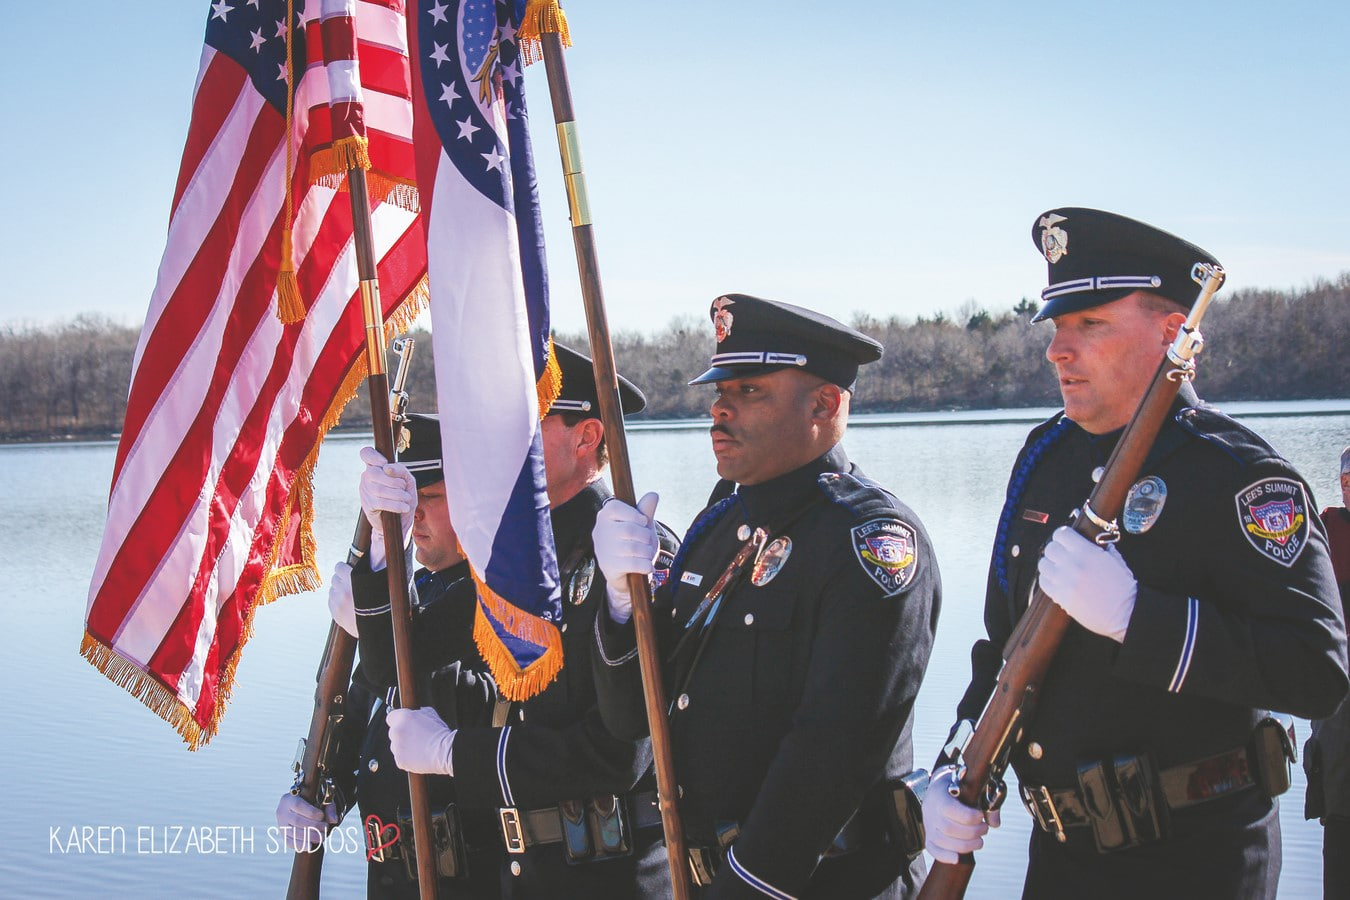 Police Officers pose while holding flags and rifles for opening ceremony at the Plunge